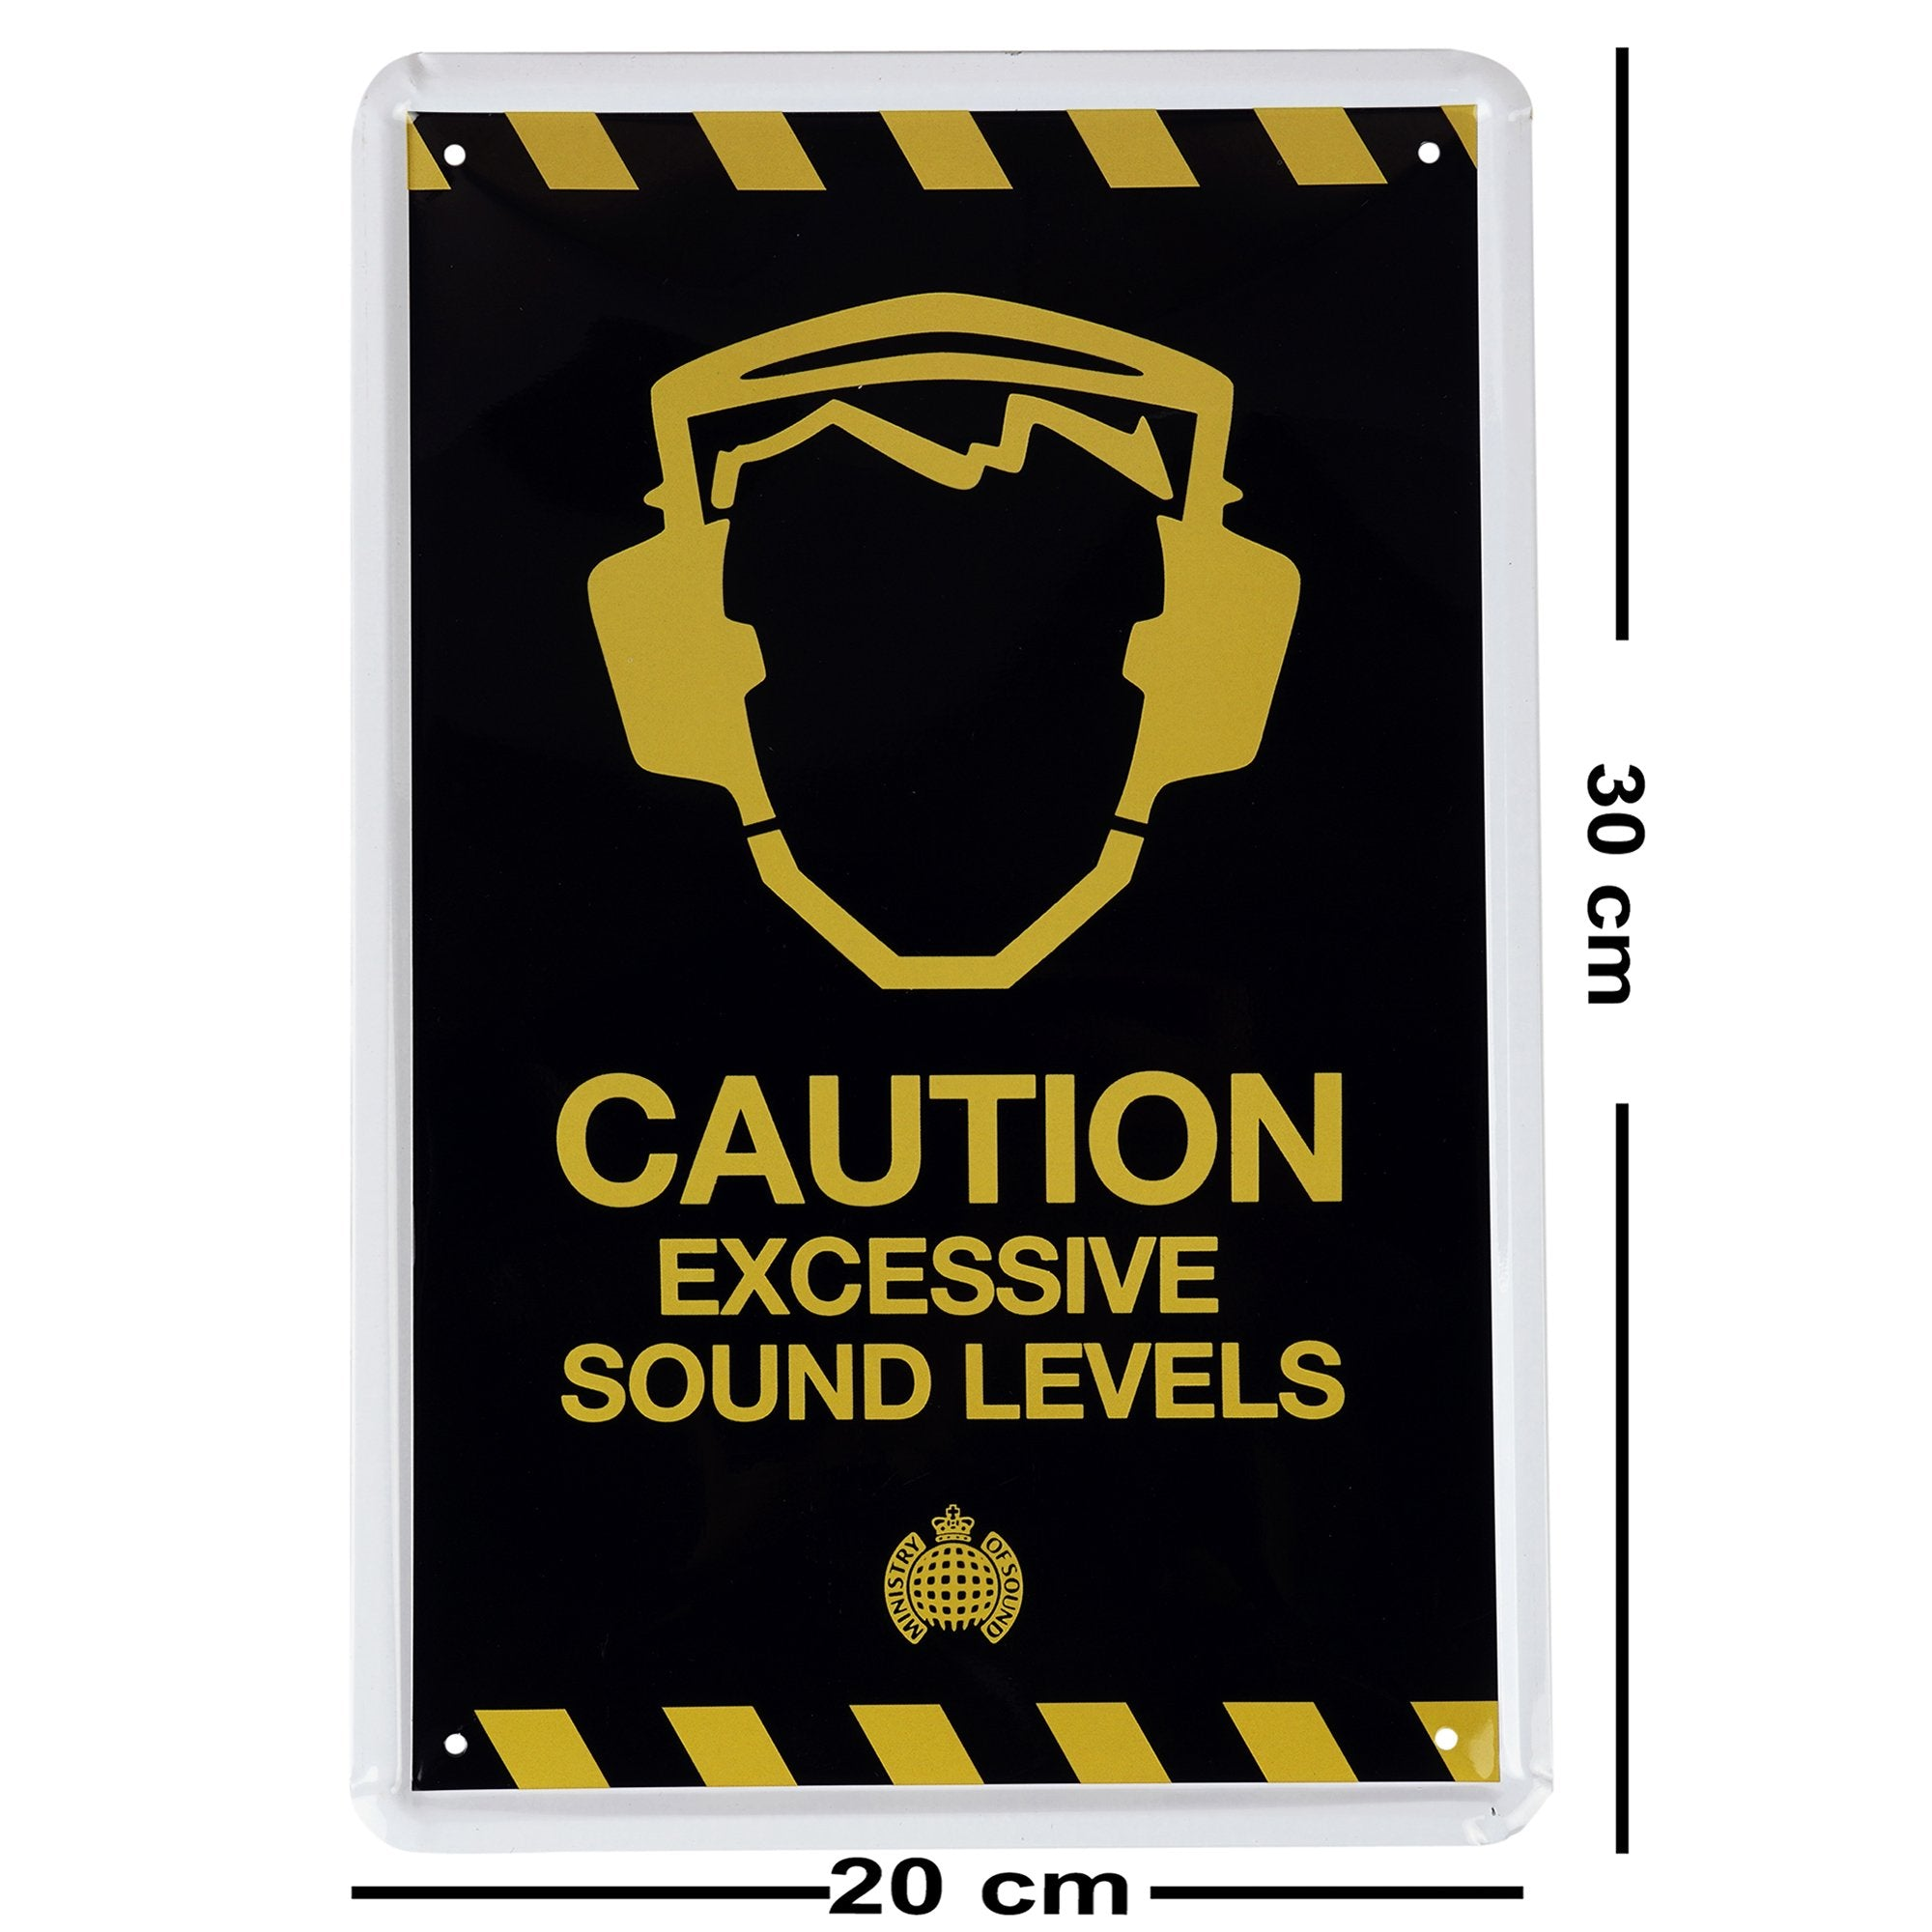 Caution Excessive Sound Levels Wall Plaque